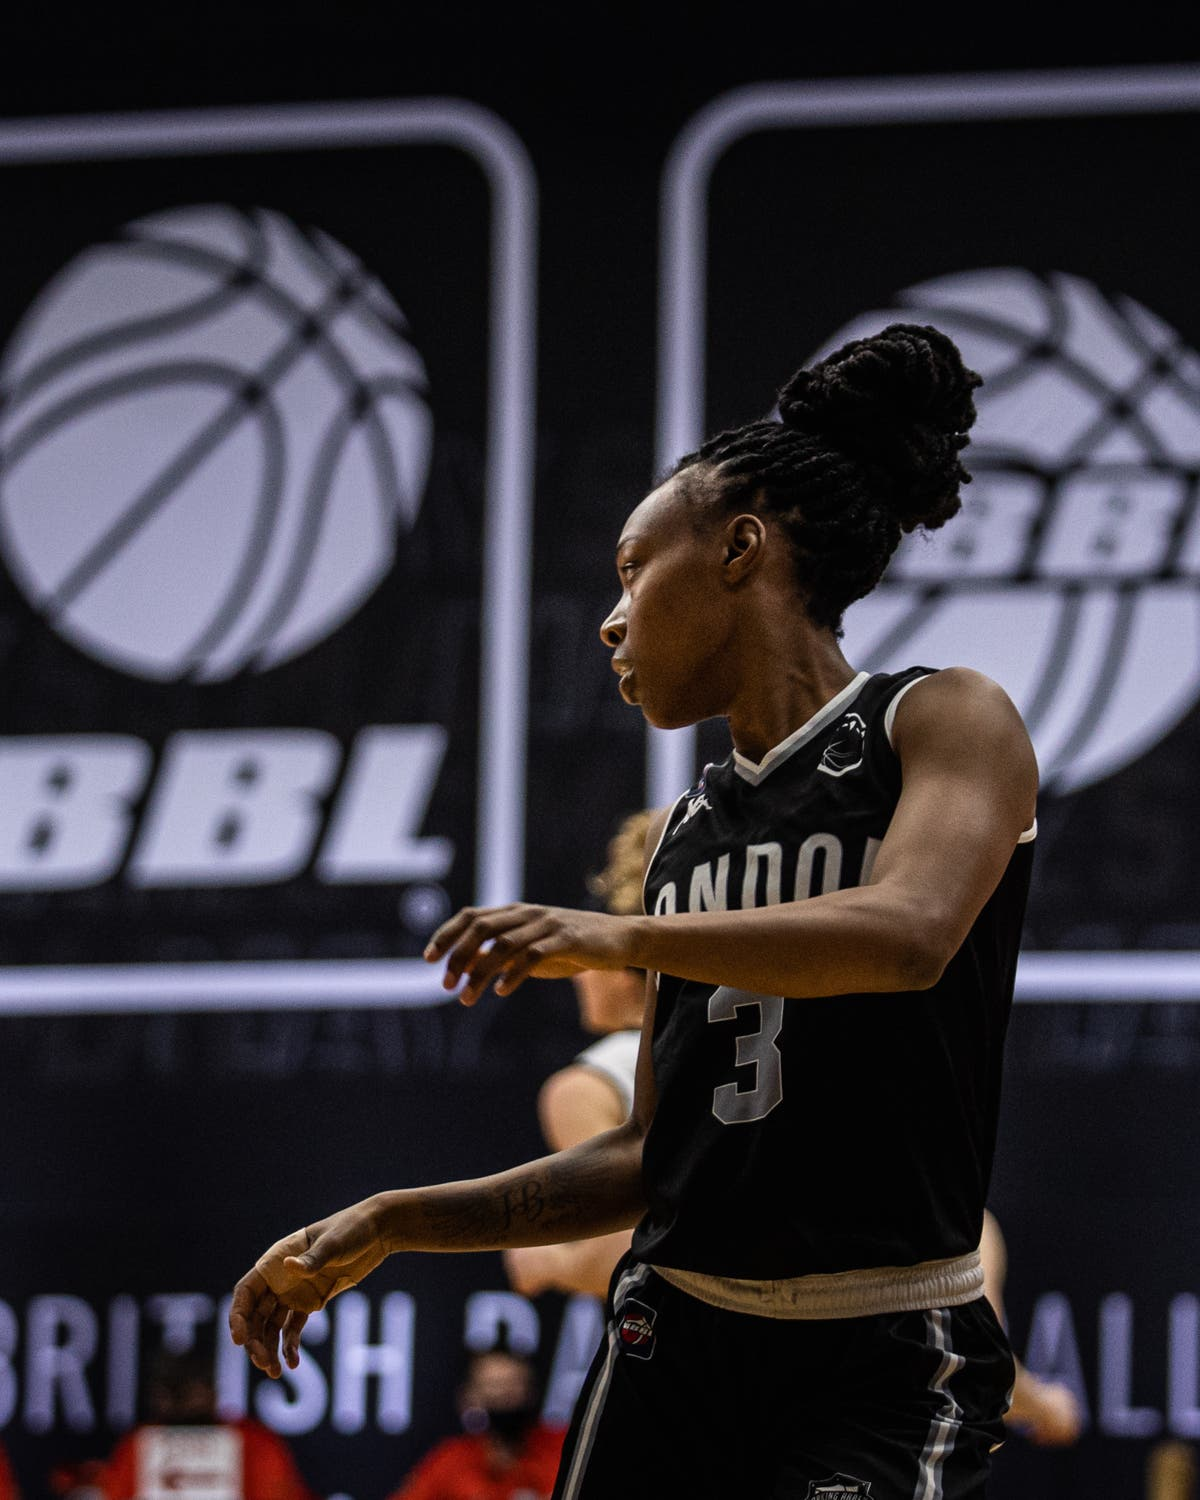 Reaching EuroCup group stages a big deal for Lions, says Shanice Beckford-Norton